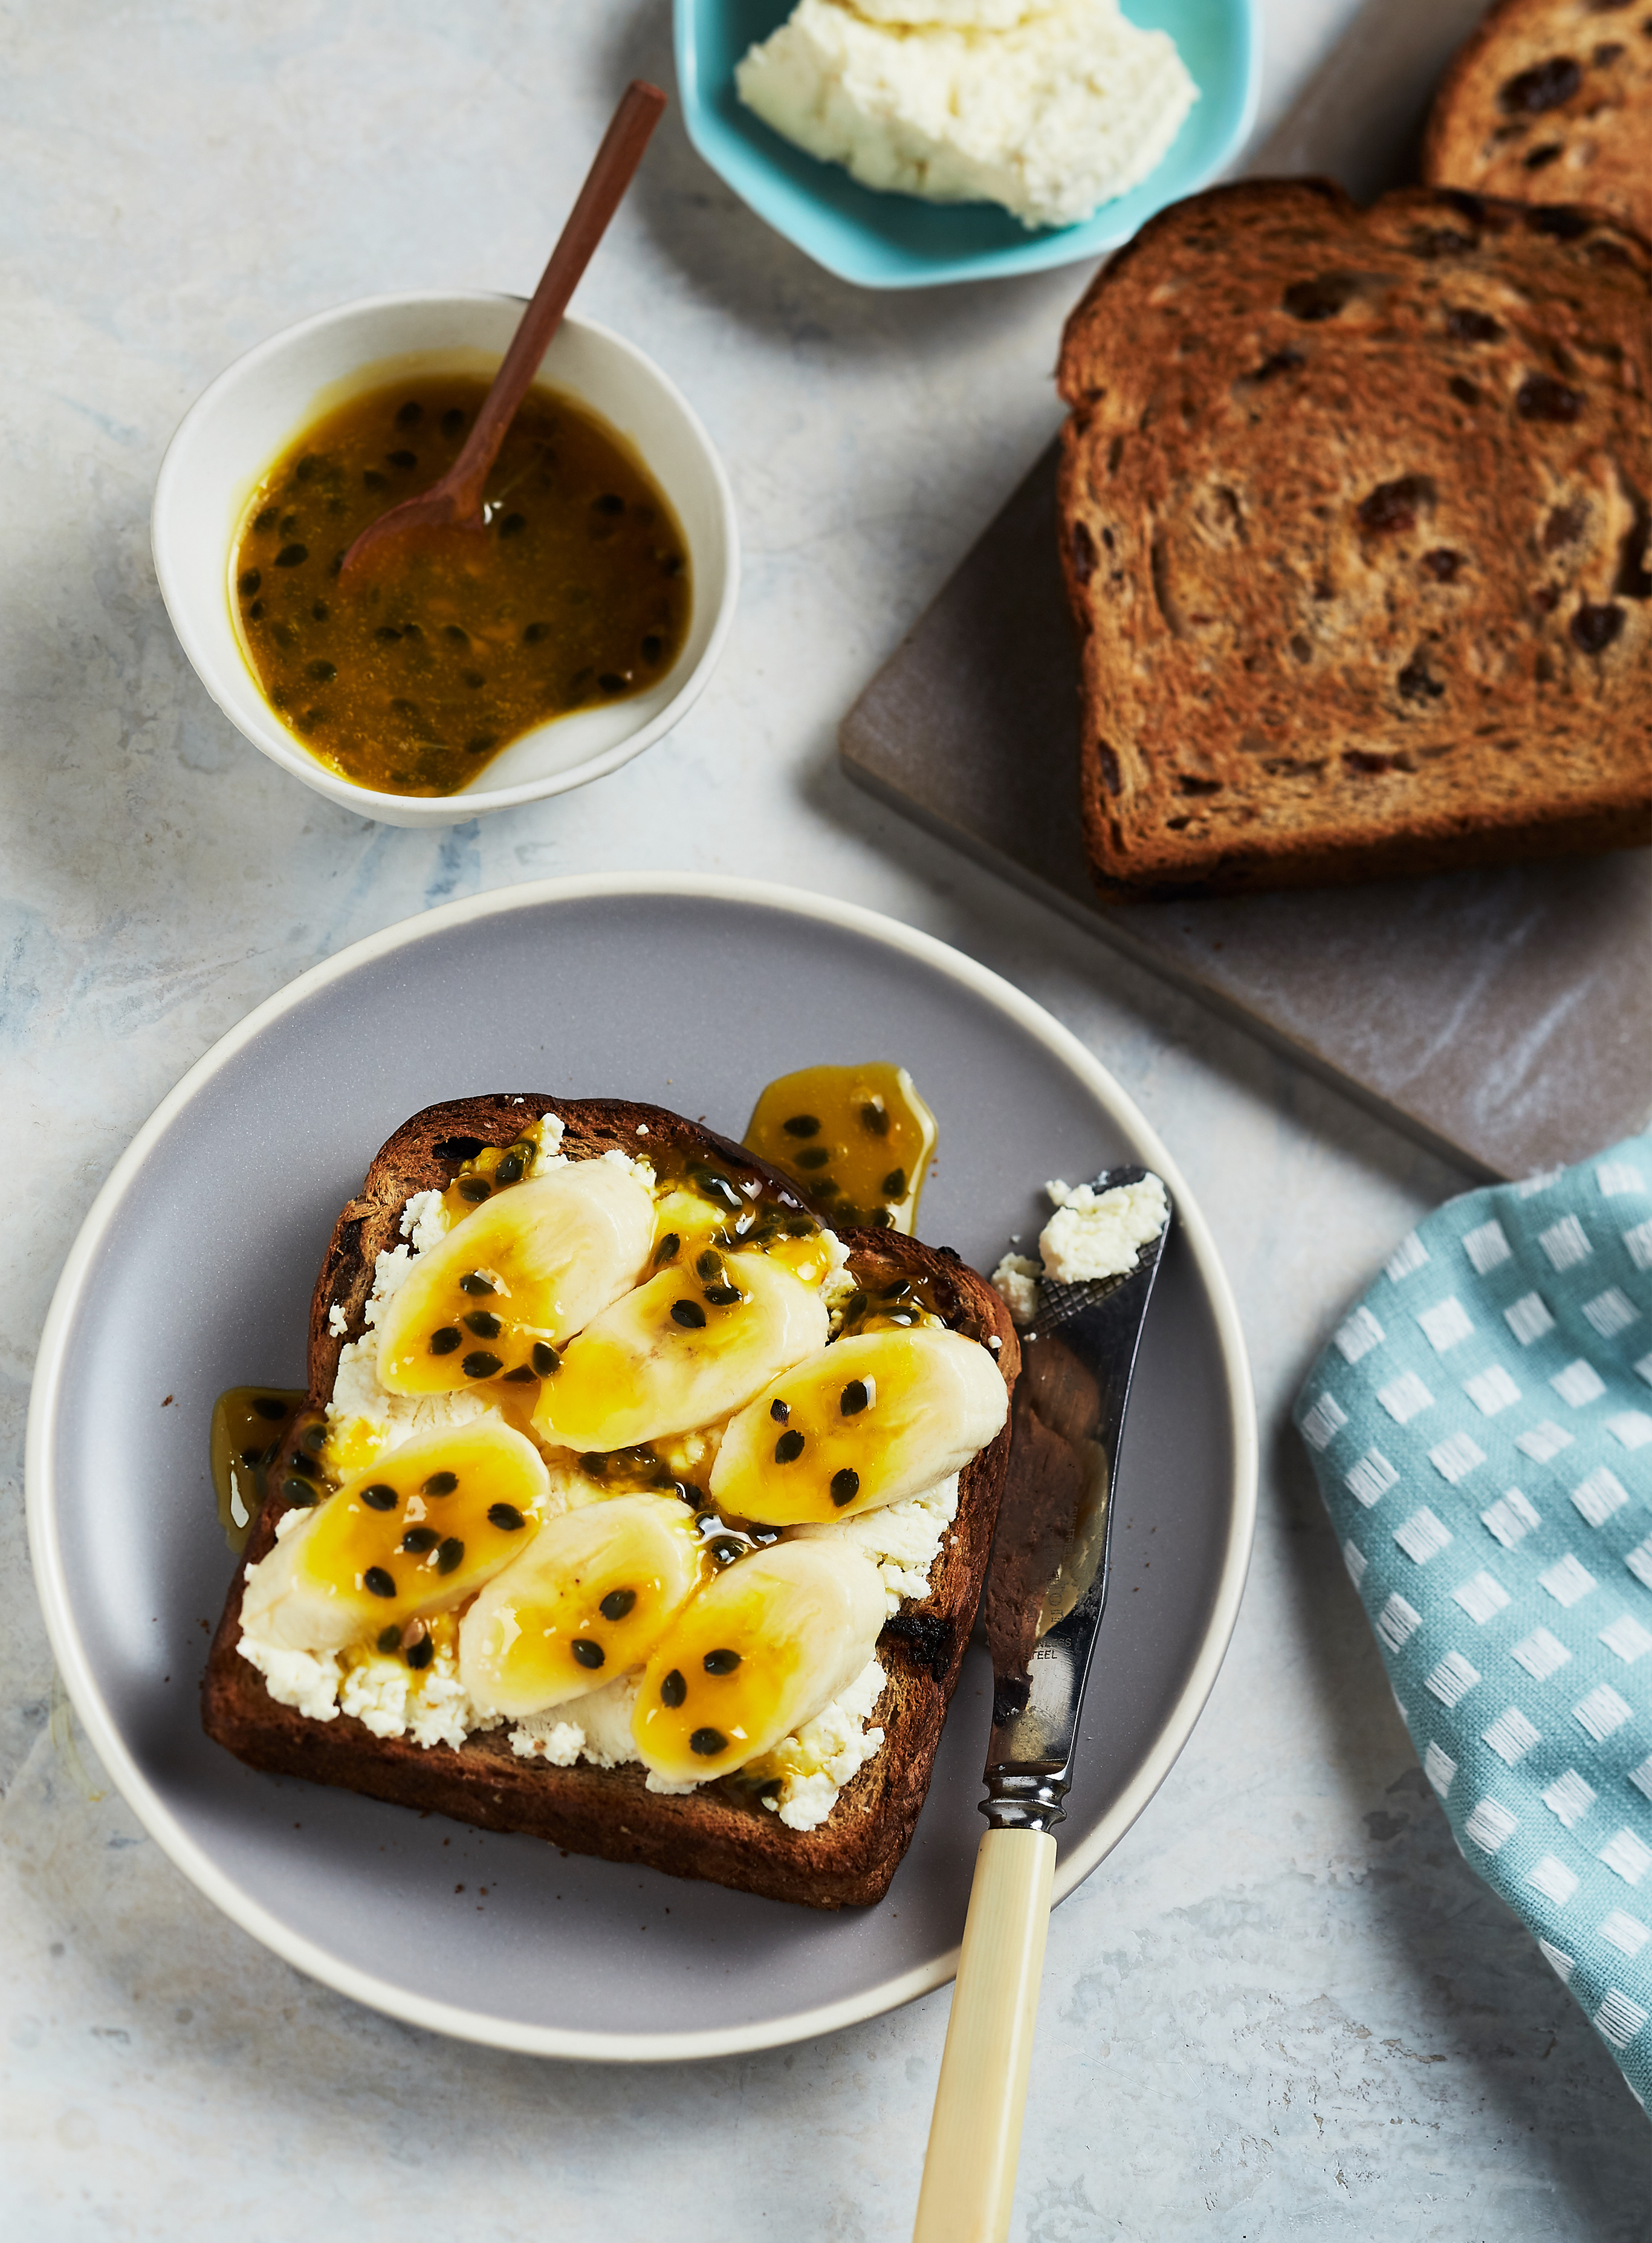 Thick Cut Fruit Toast with Passionfruit Sauce